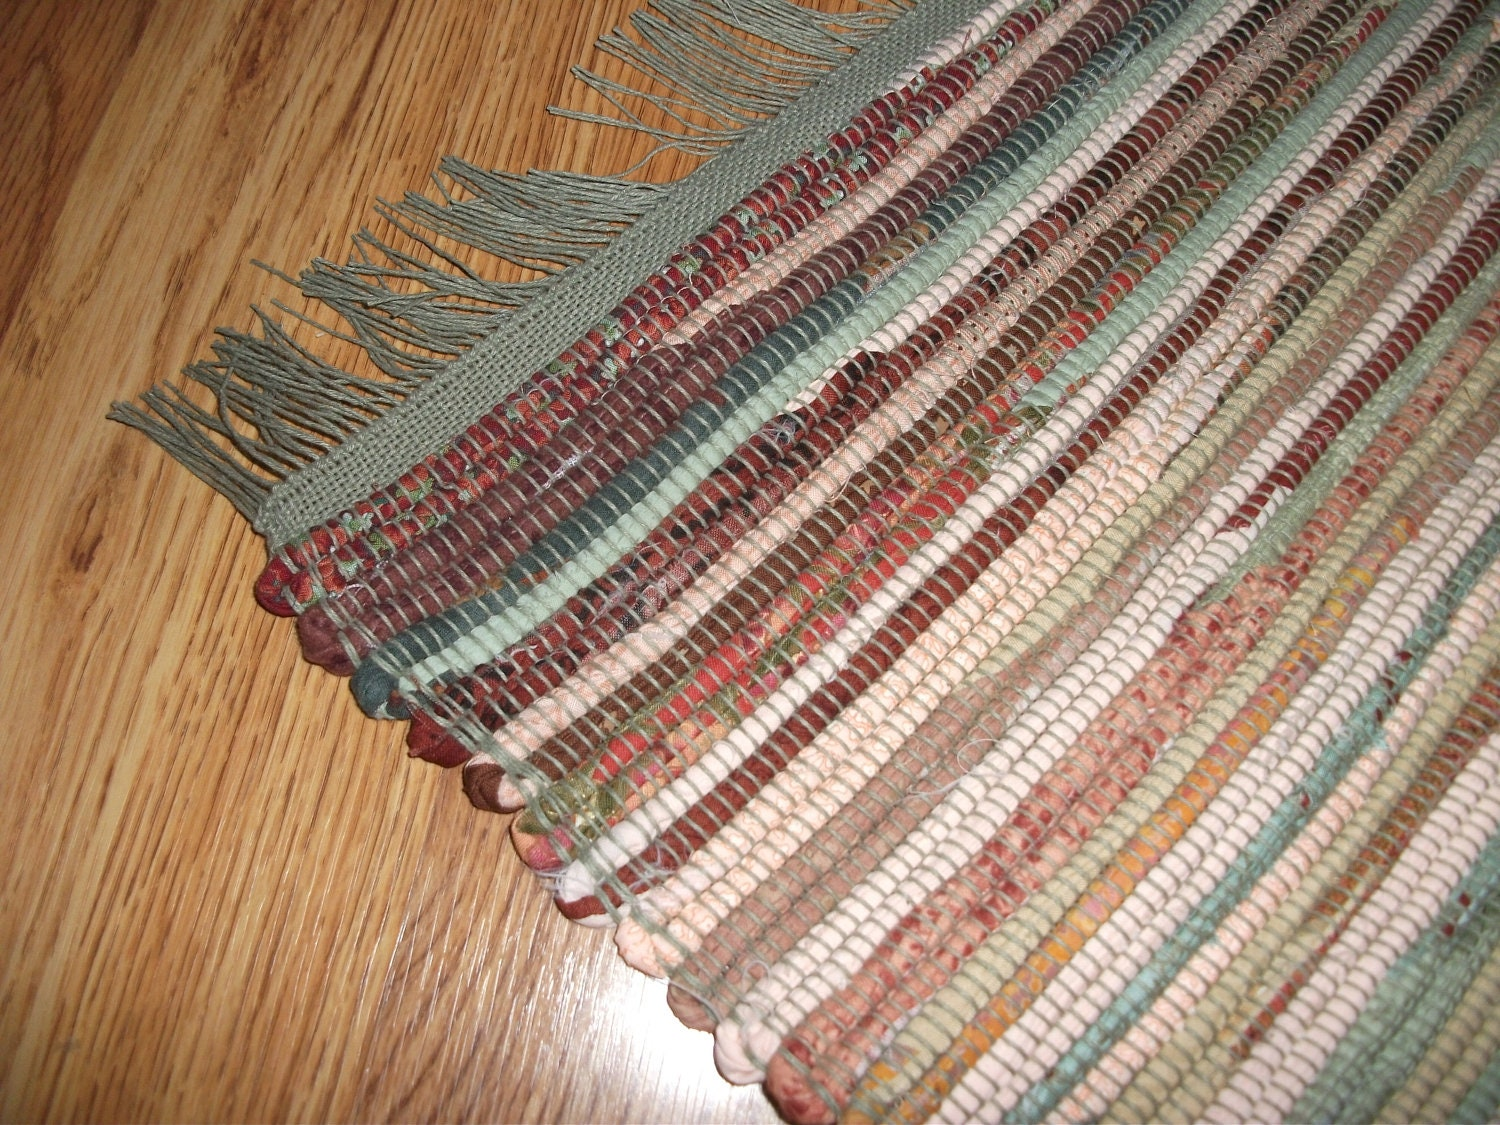 Hand Woven Cotton Rag Rug In Shades Of Sage Green Peach